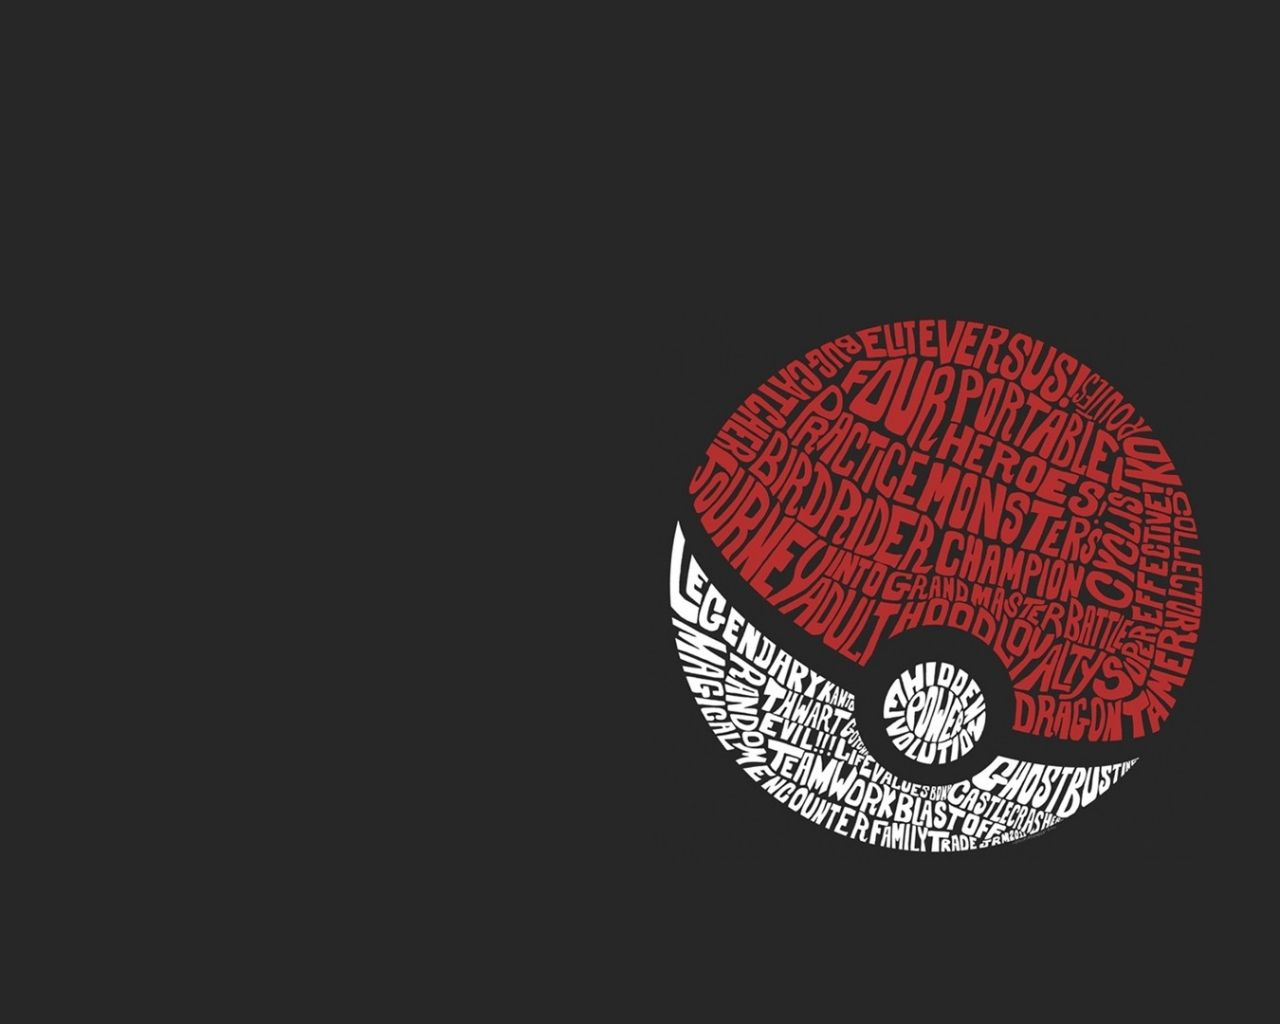 pokeball wallpaper pinterest - photo #23